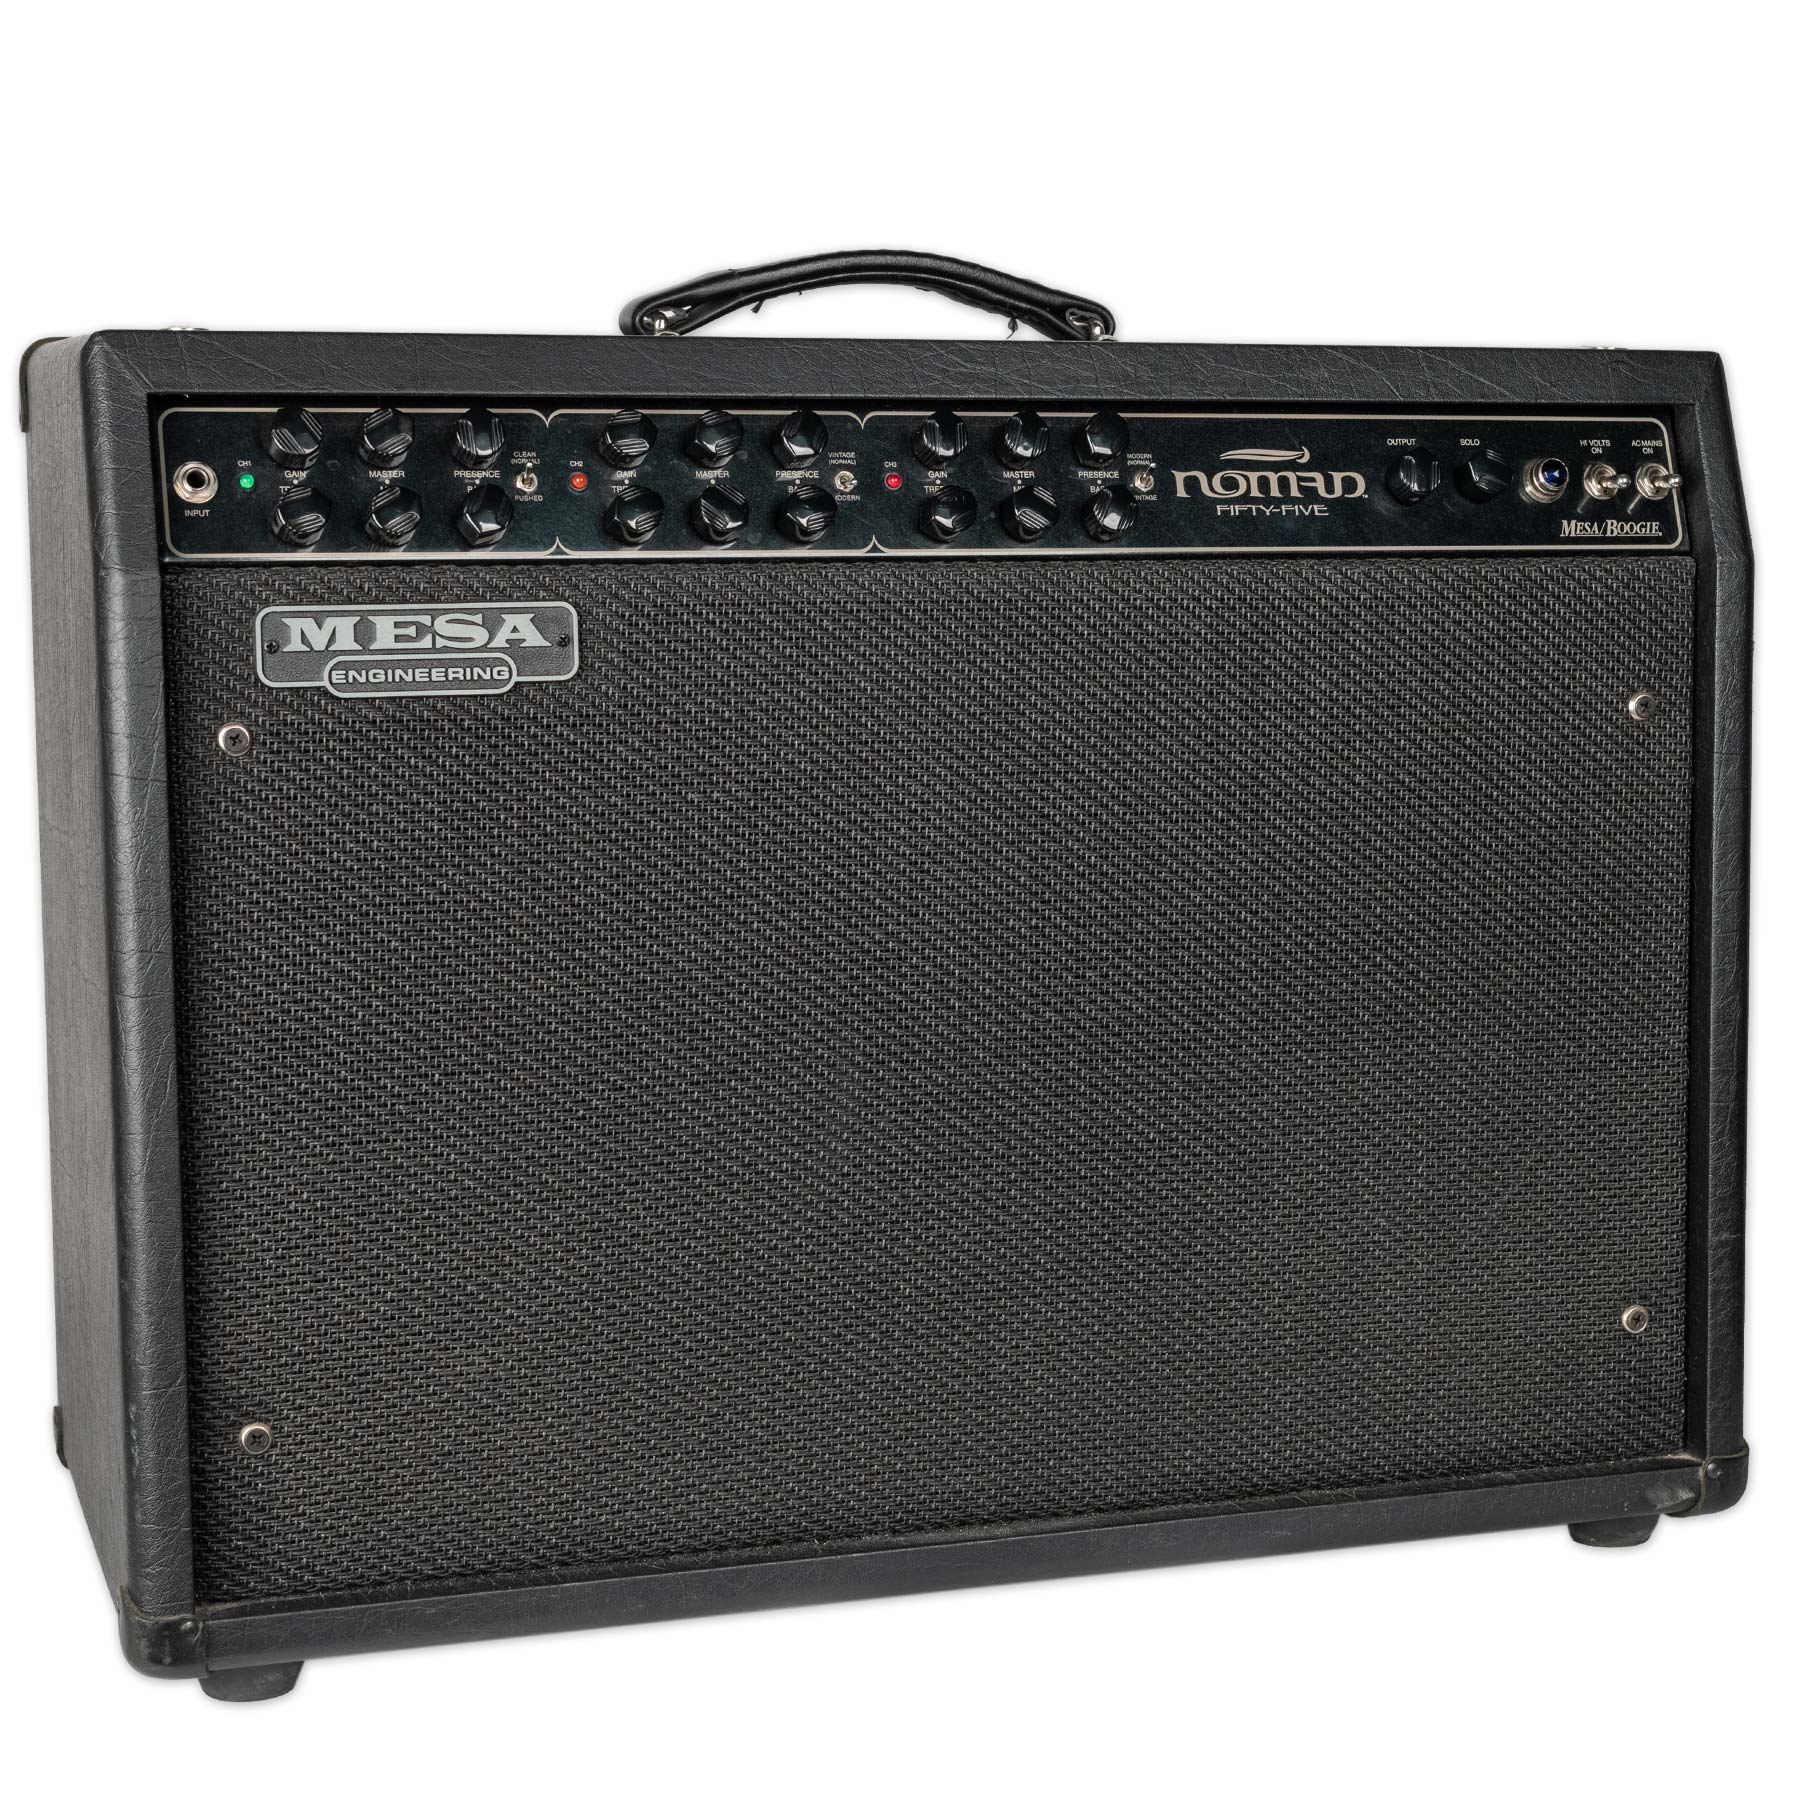 USED MESA BOOGIE NOMAD 55 2X12 COMBO WITH FOOTSWITCH AND MANUAL